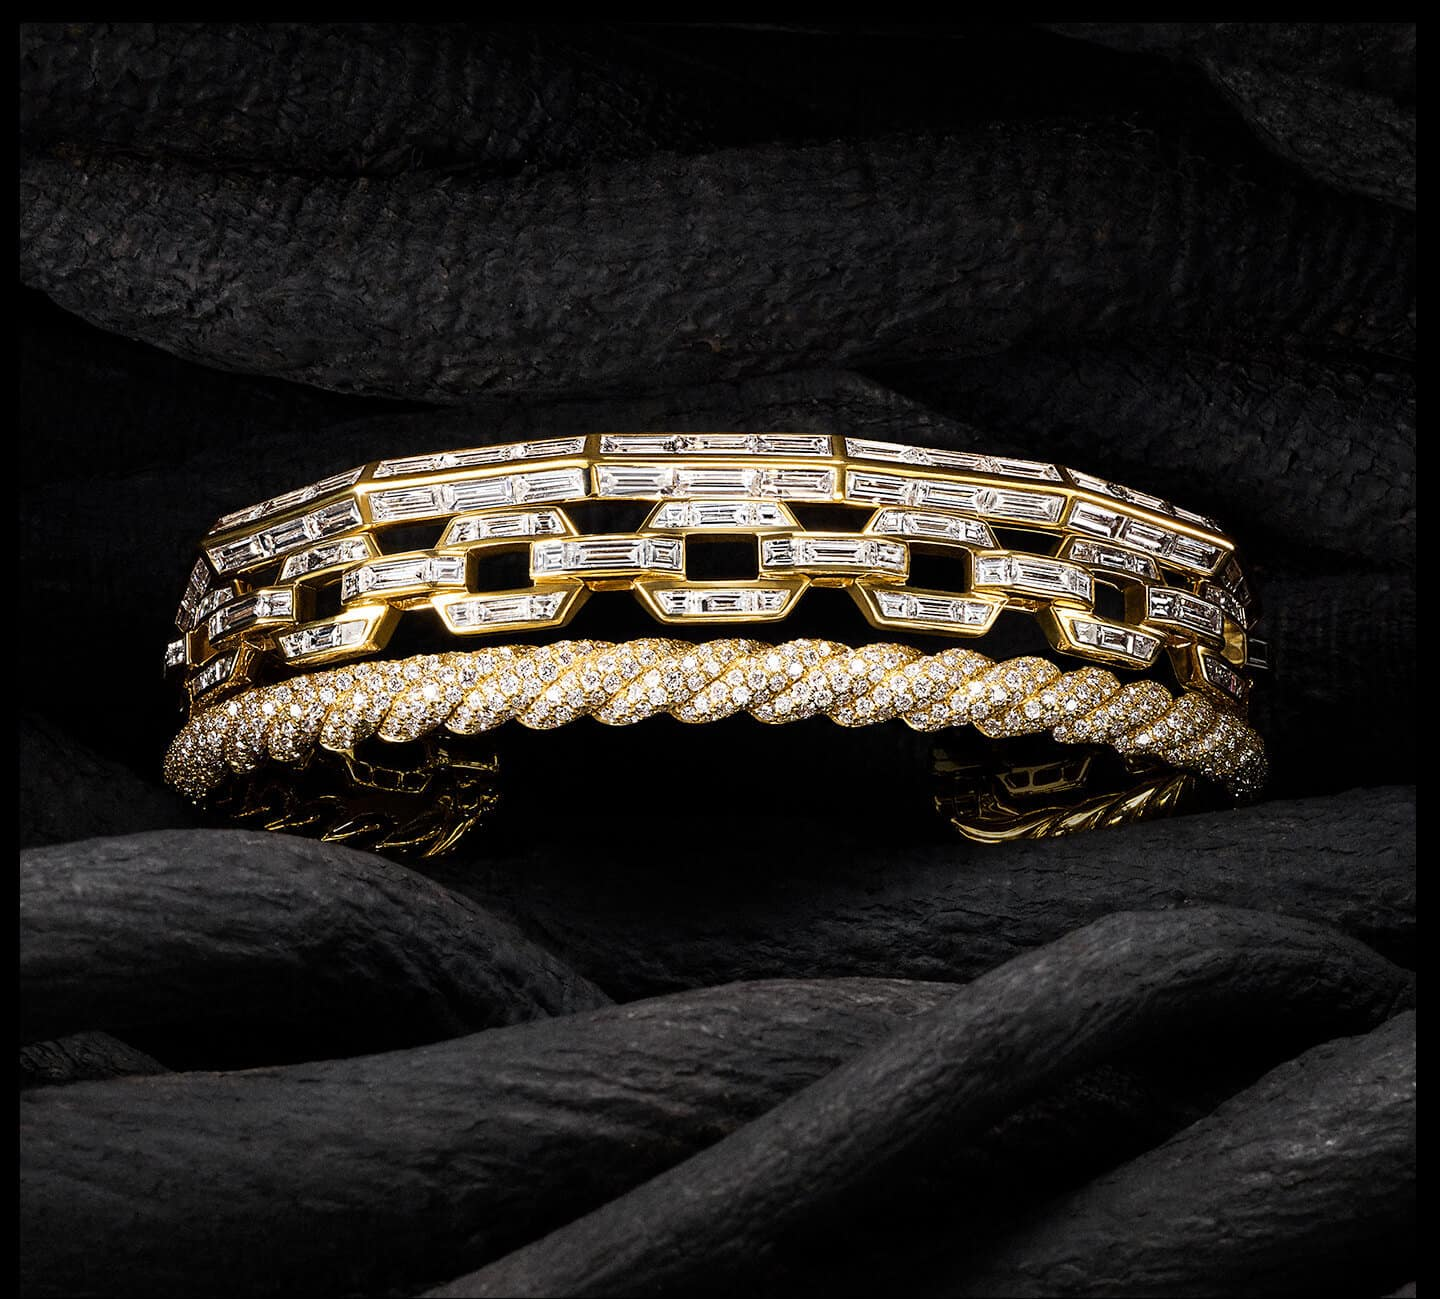 A color photo shows a David Yurman High Jewelry Stax bracelet set between thick, brown twisting tree branches reminiscent of cables. The jewelry is crafted from 18K yellow gold and is fully set with brilliant-, baguette- and custom-cut white diamonds.